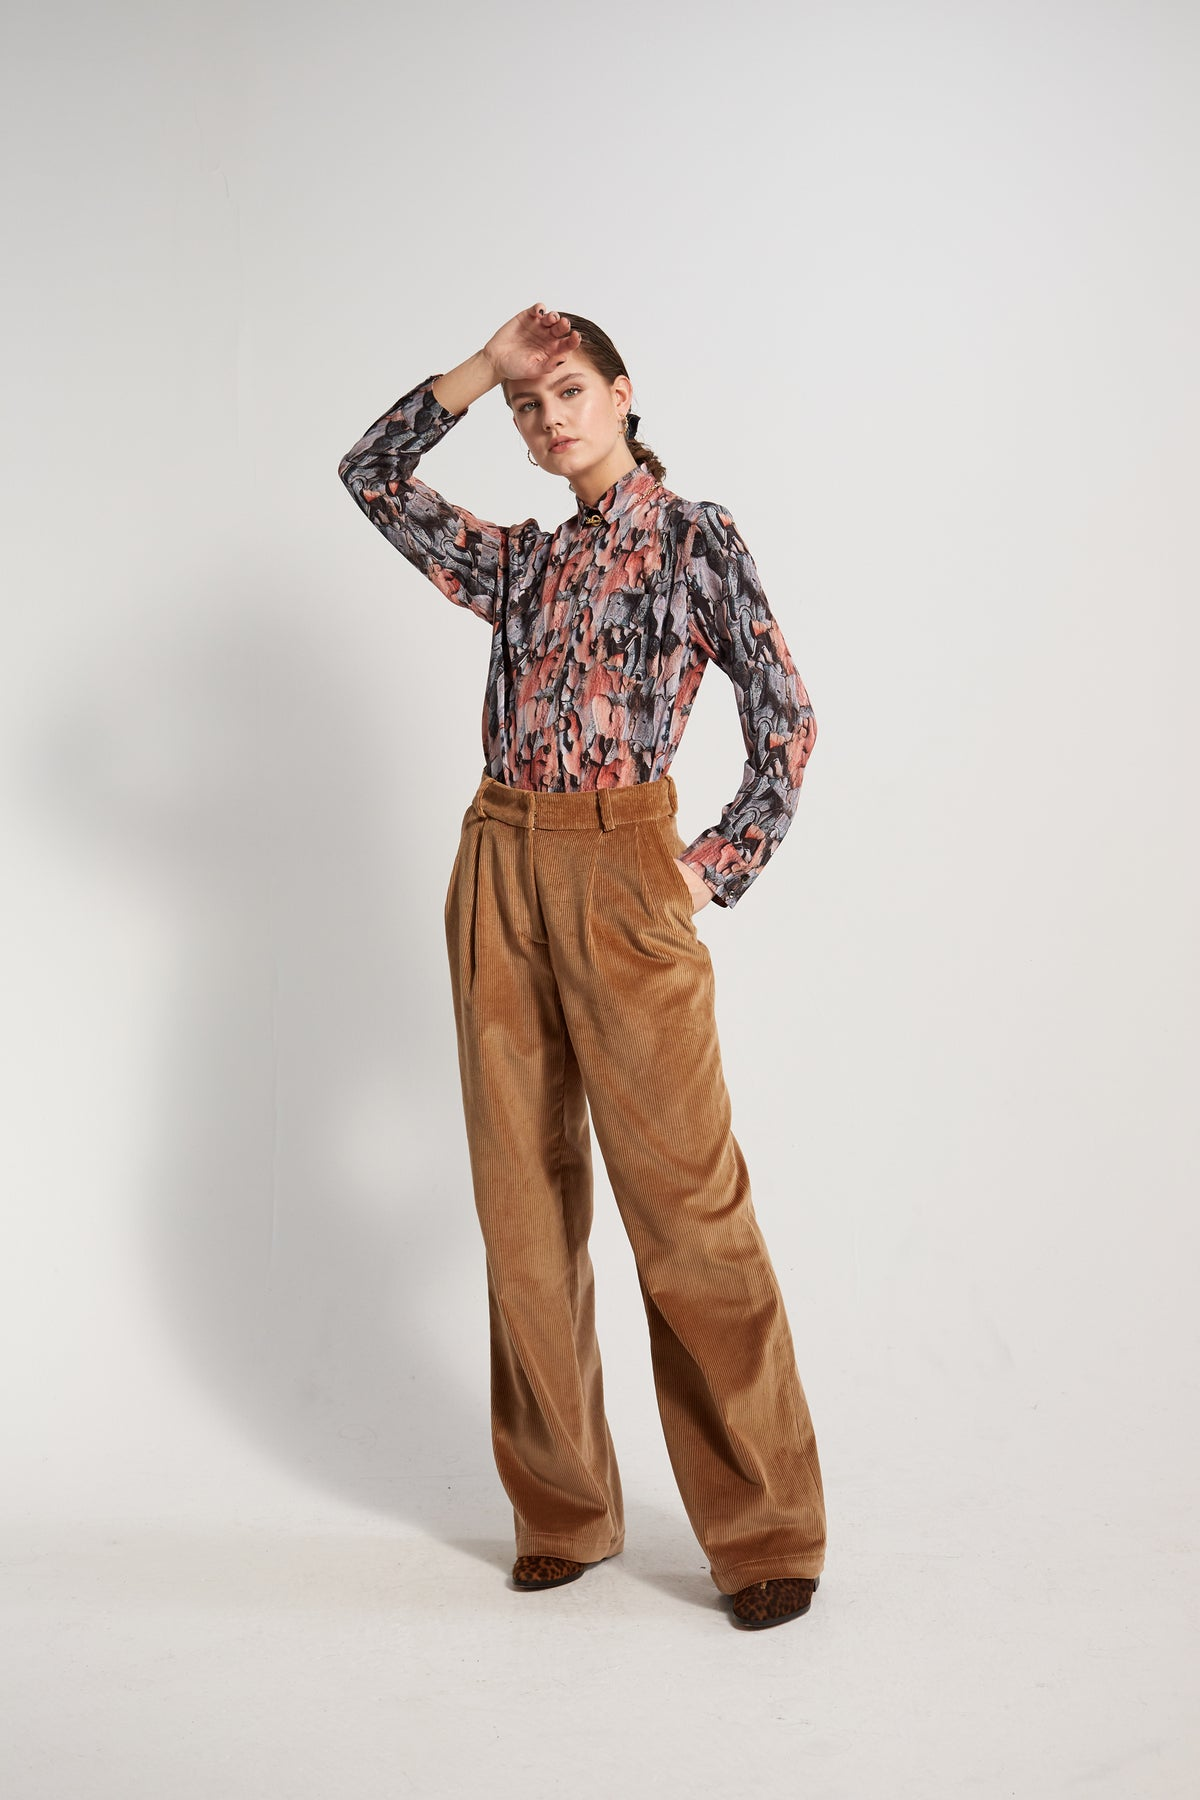 Moor pants in shiny caramel corduroy